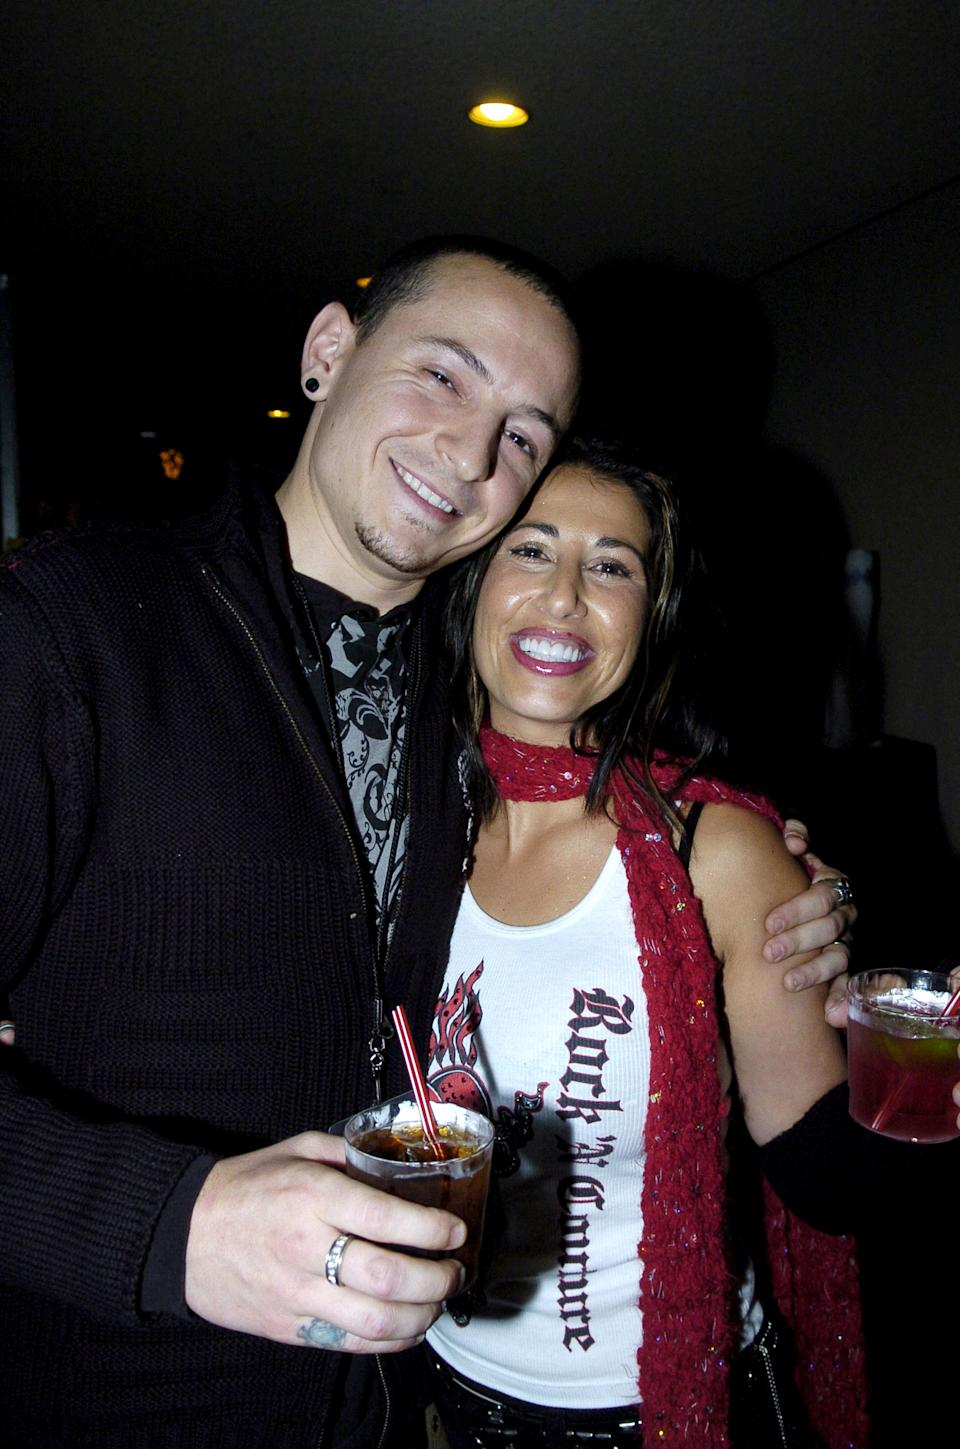 Chester Bennington and wife Samantha from Linkin Park**exclusive** ***Exclusive*** (Photo by Jeff Kravitz/FilmMagic, Inc)